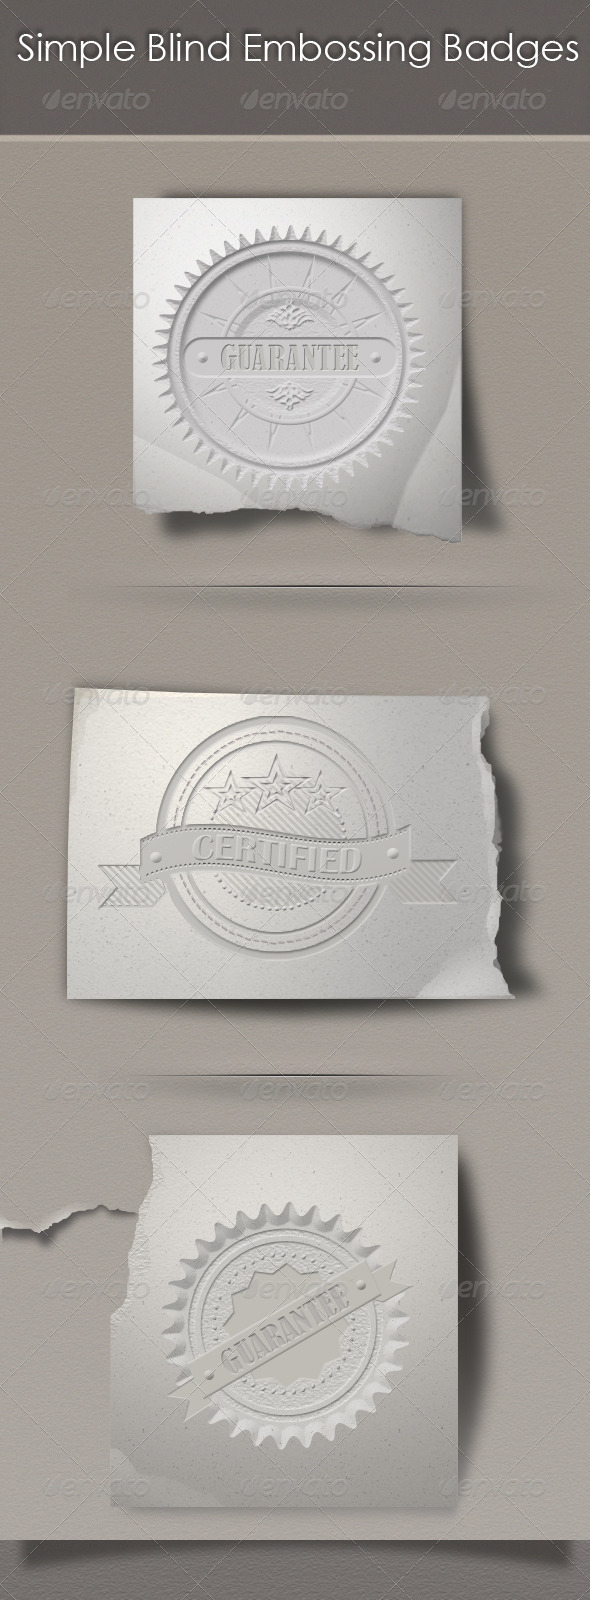 Simple Blind Embossing Badges - Badges & Stickers Web Elements